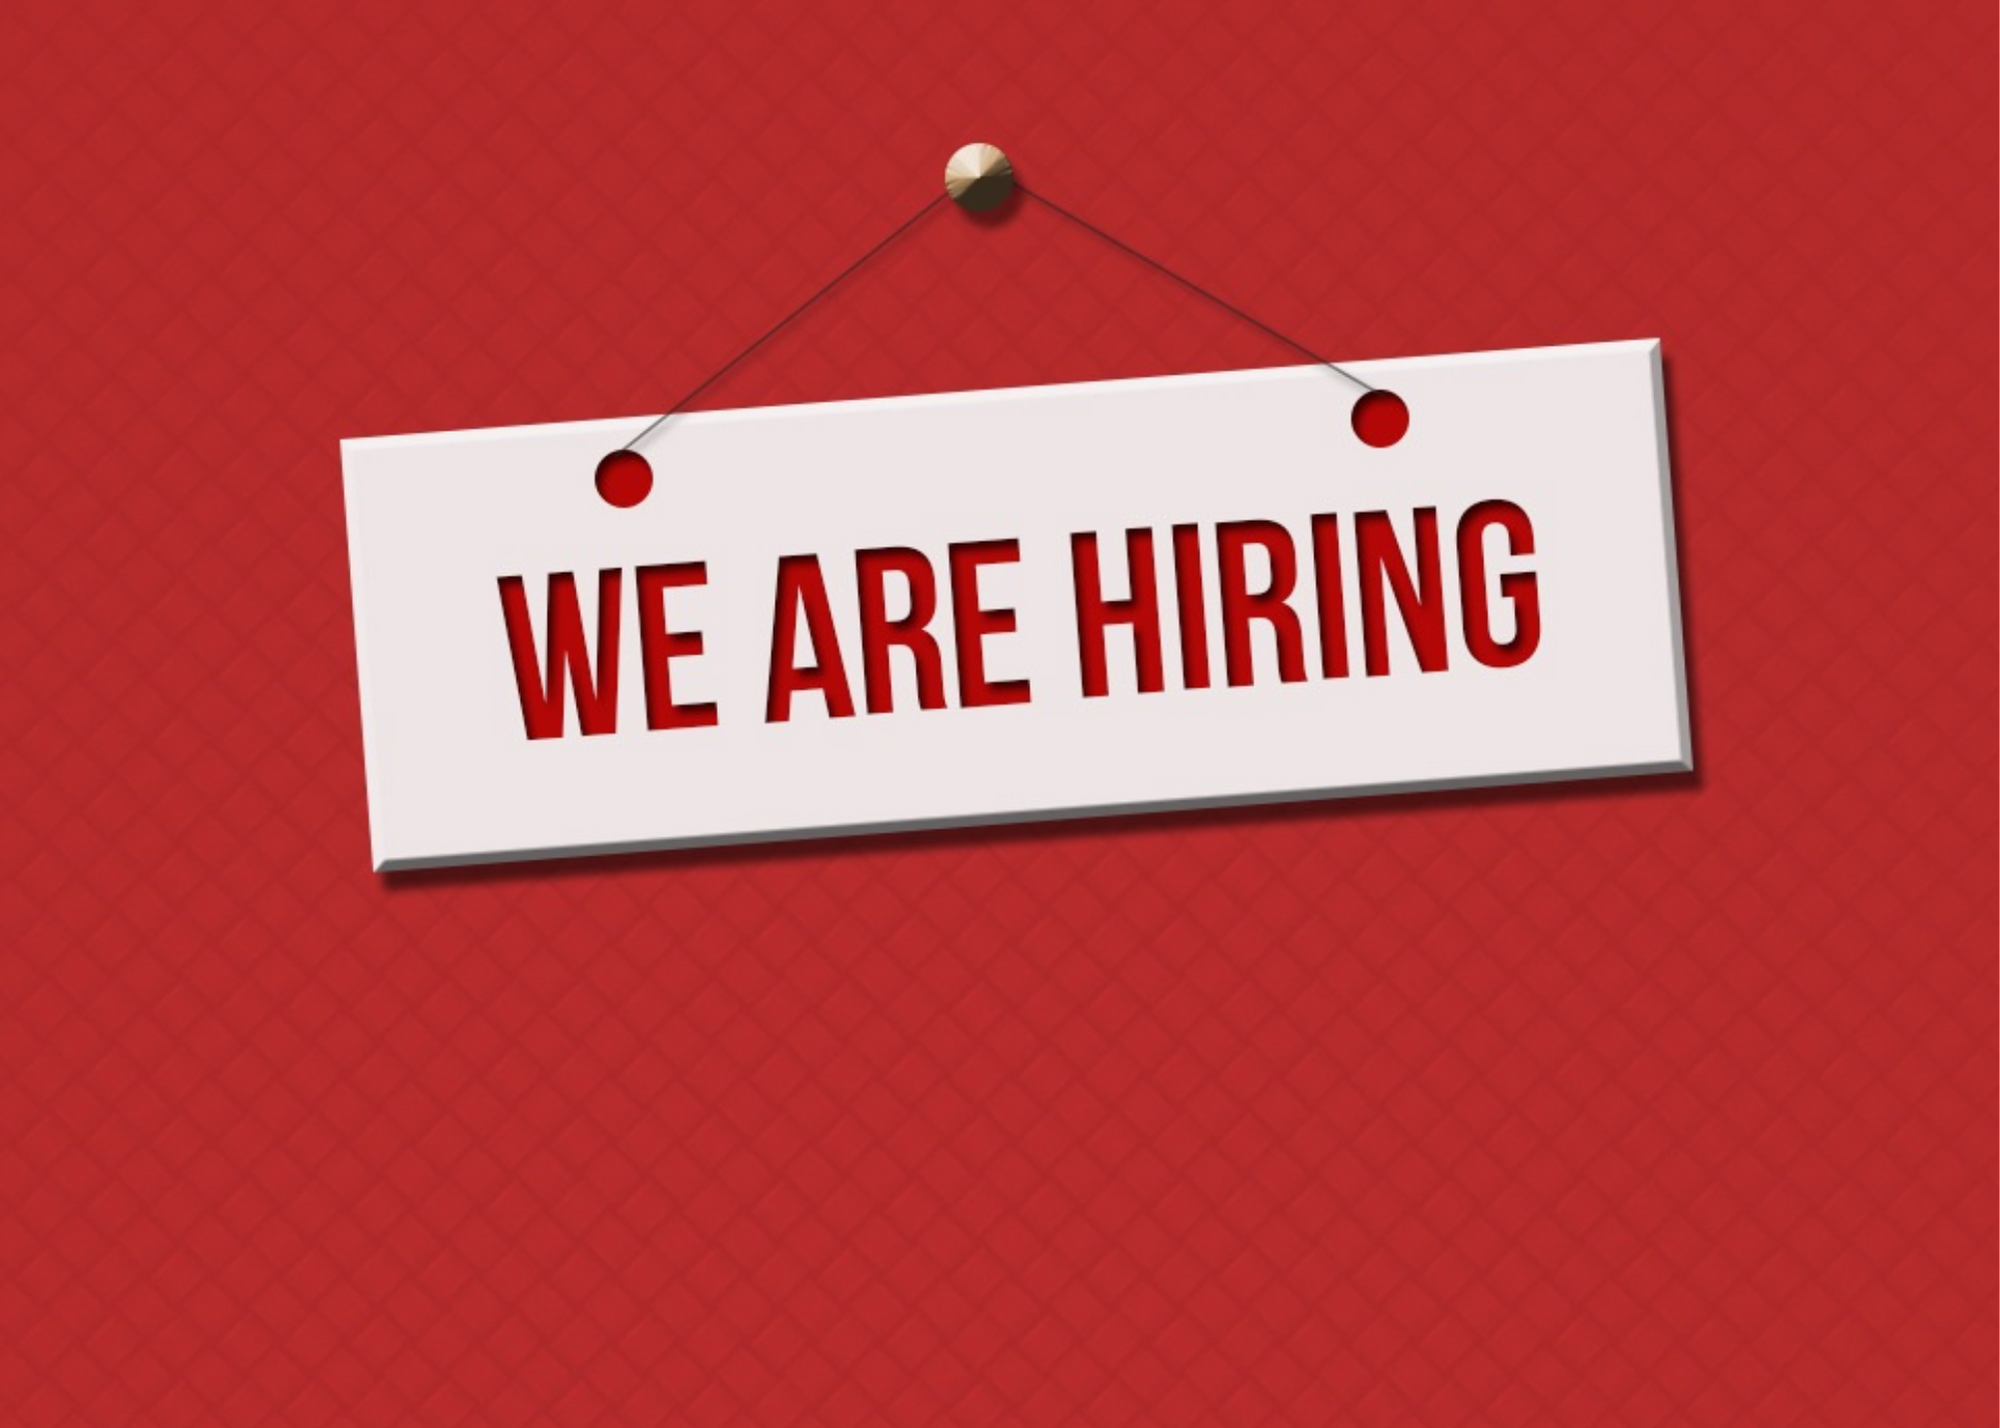 we are hiring text over red background